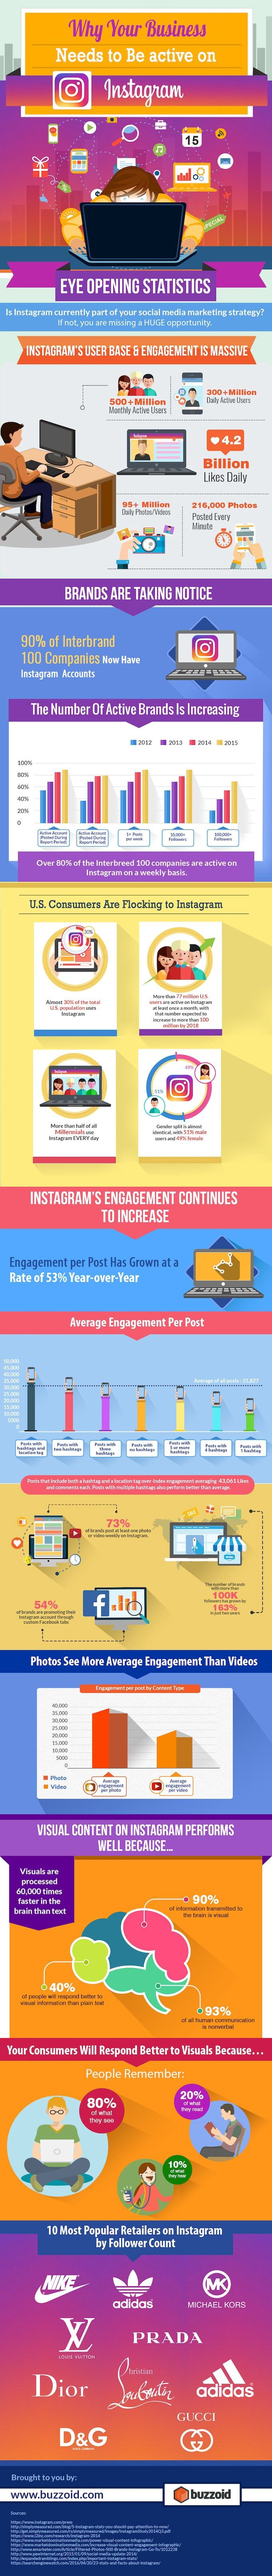 035f29b7e71517fdd1d5311b9a989591 Marketing Infographic : #Infographic: Why Your Business Needs to Be active on #Instagram ✨    #SocialM...